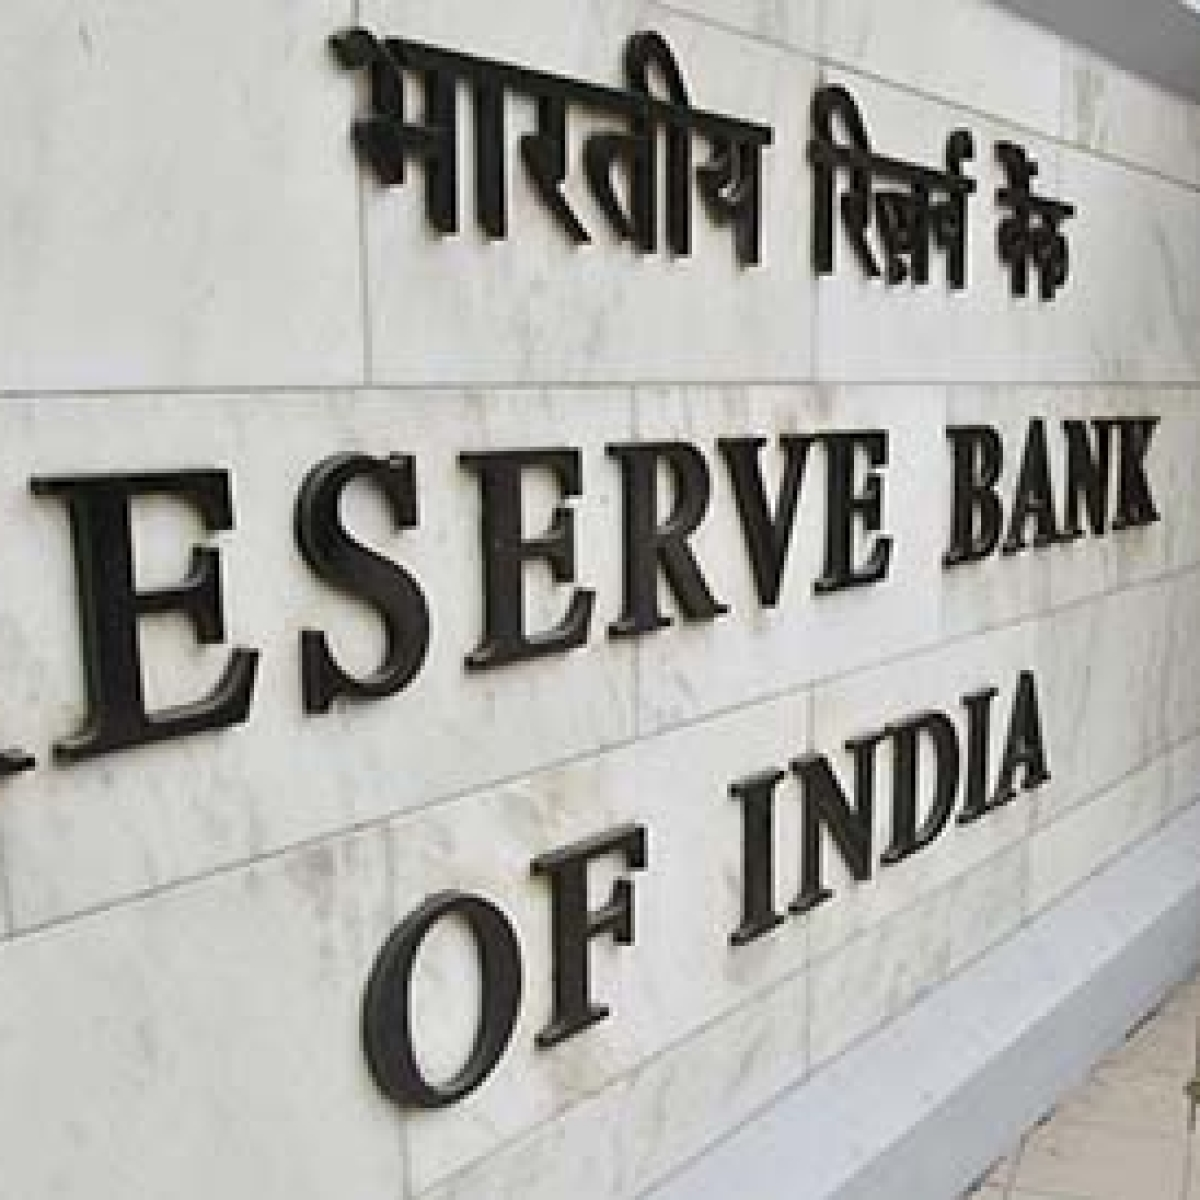 RBI's rate cut shows India's focus to boost economic growth: Niti